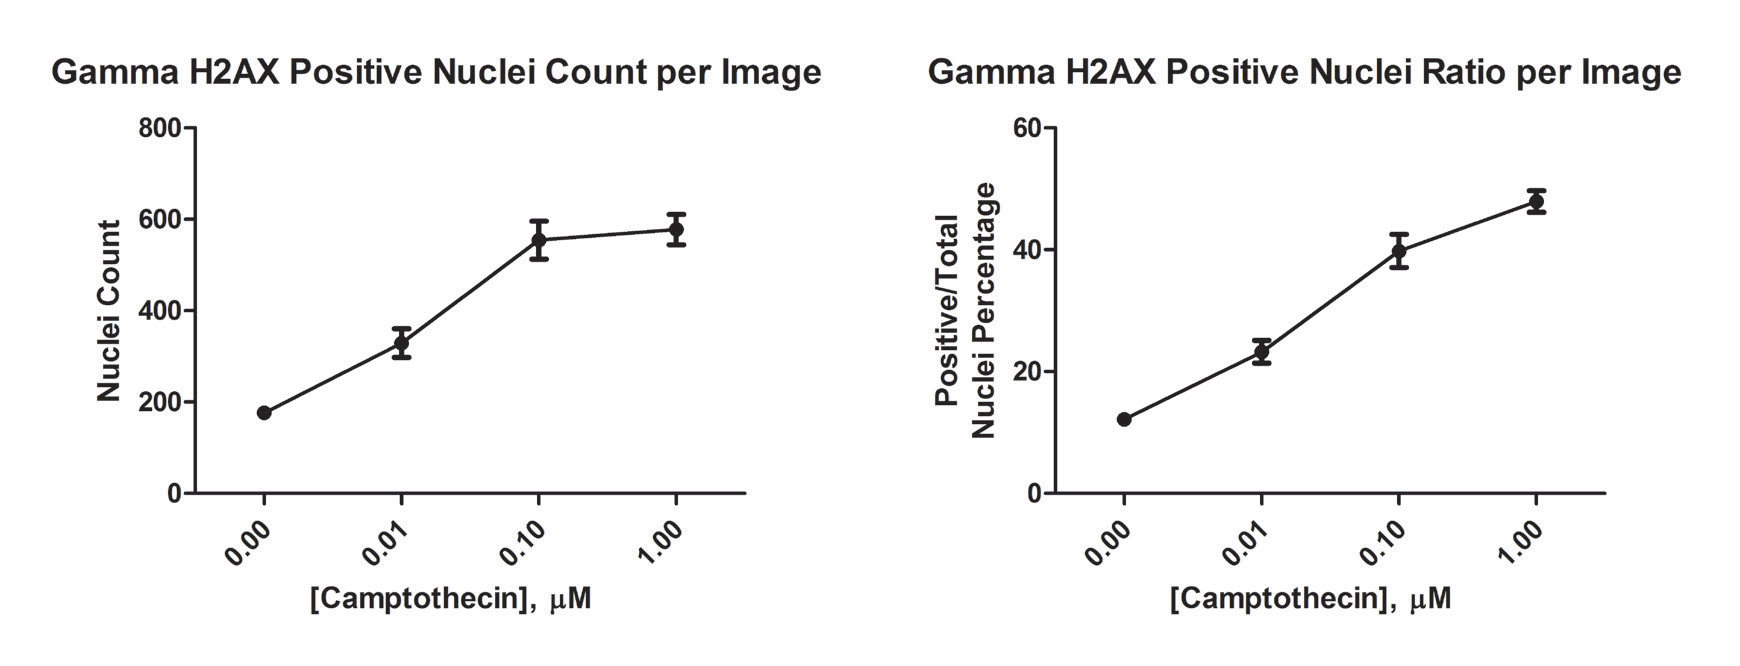 γH2AX positive (A) nuclei count and (B) ratio to total nuclei counted